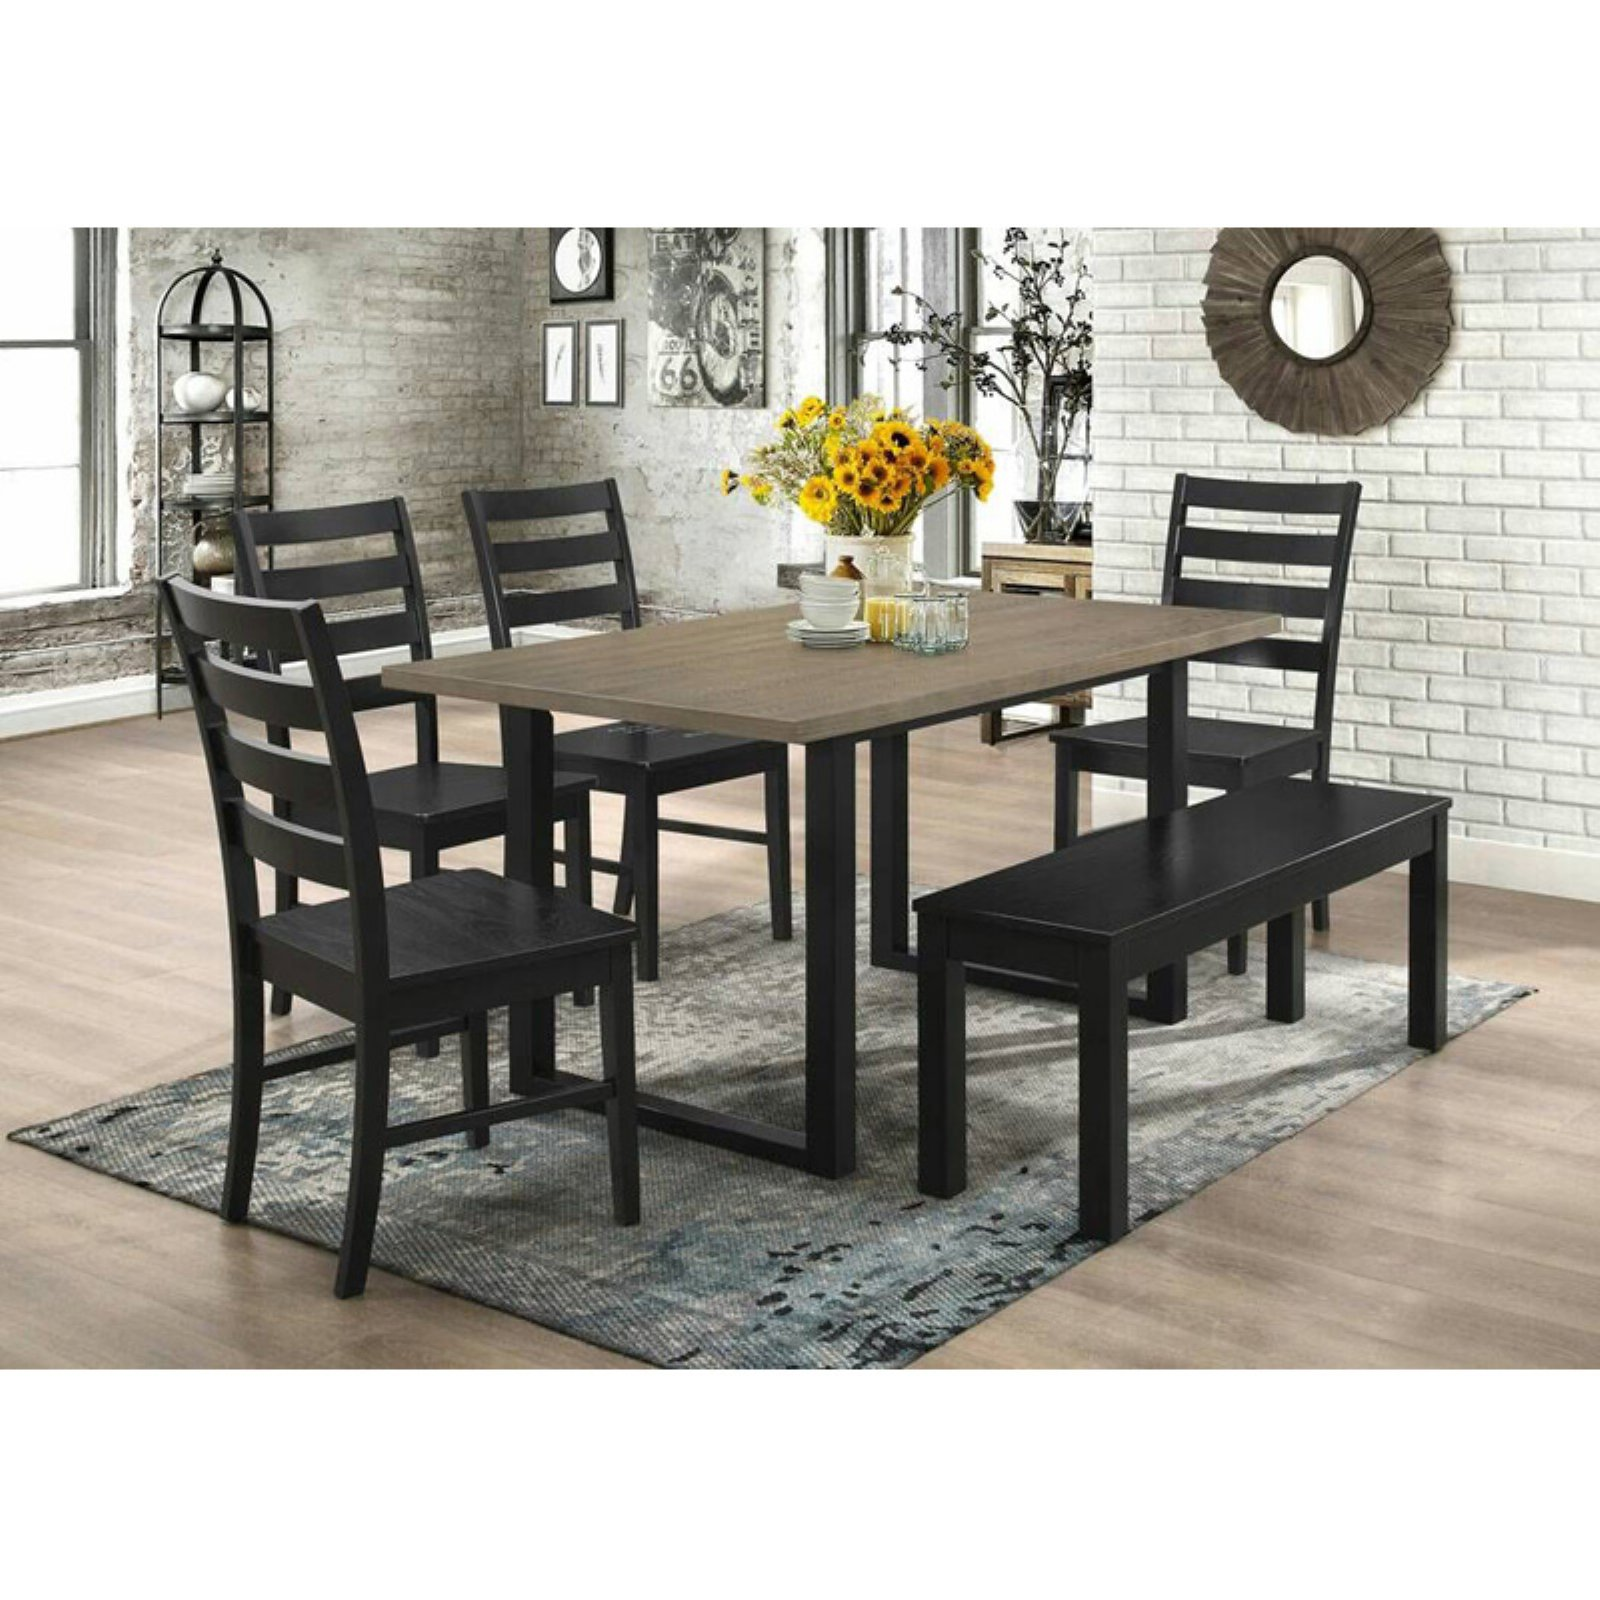 Walker Edison Modern 6 Piece Dining Table Set